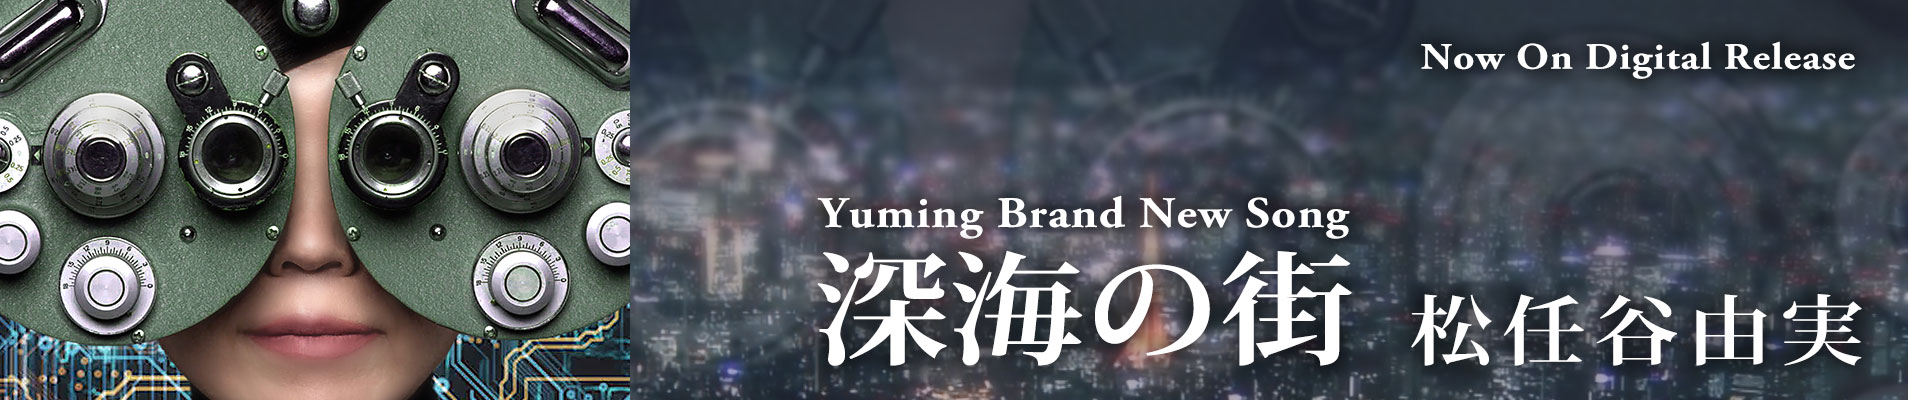 Yuming Brand New Song「深海の街」now on Digital Release!